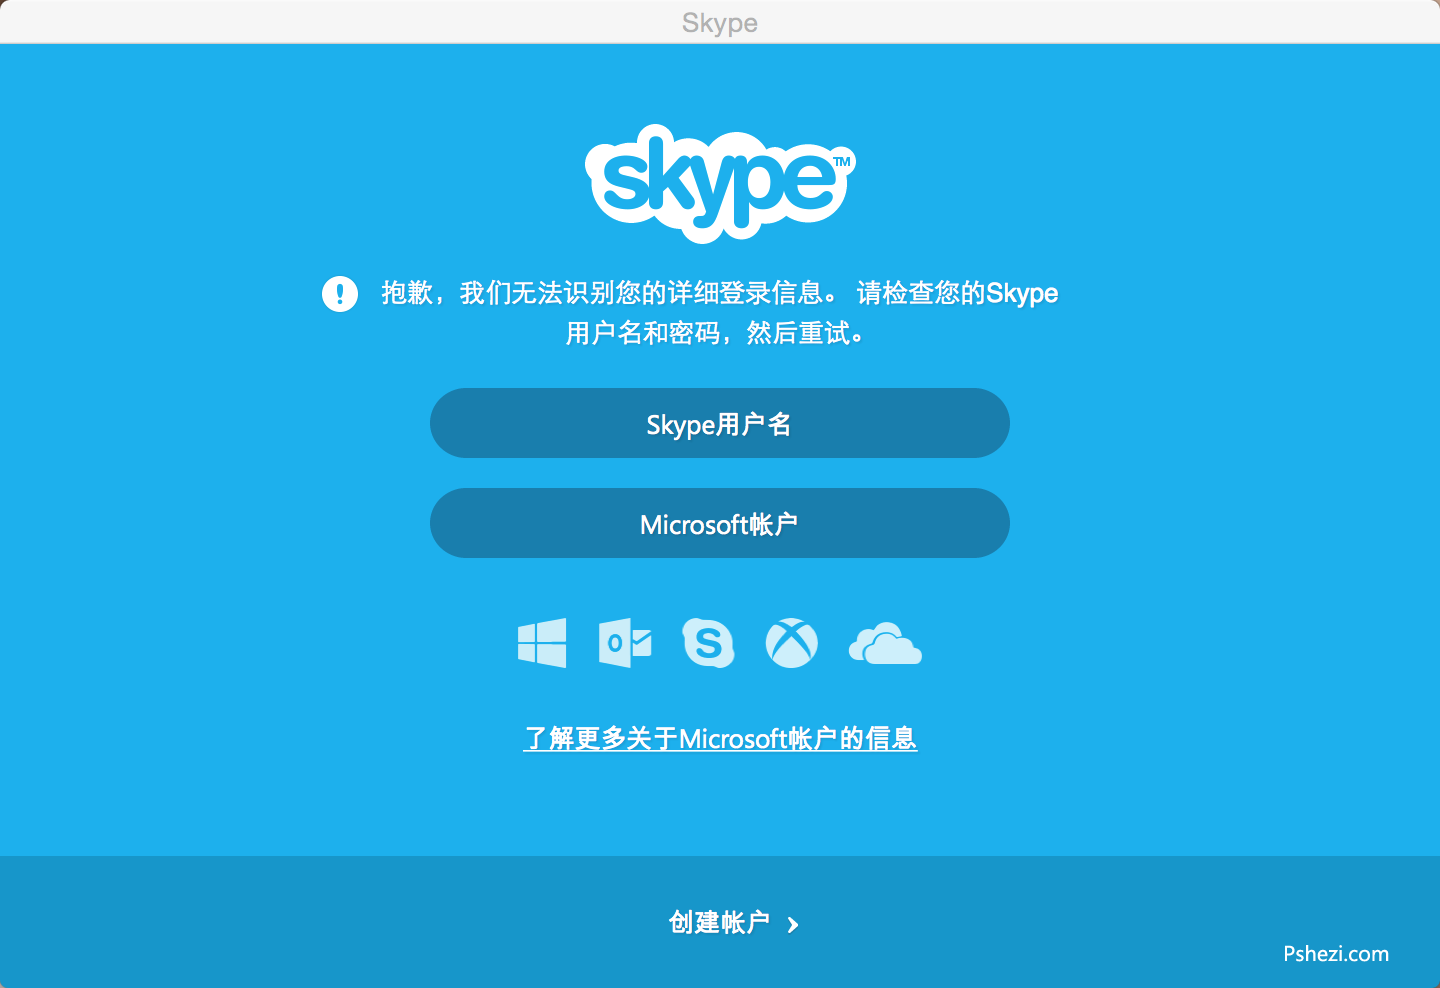 skype Mac版 skype v7.21.350 for Mac 语音沟通工具